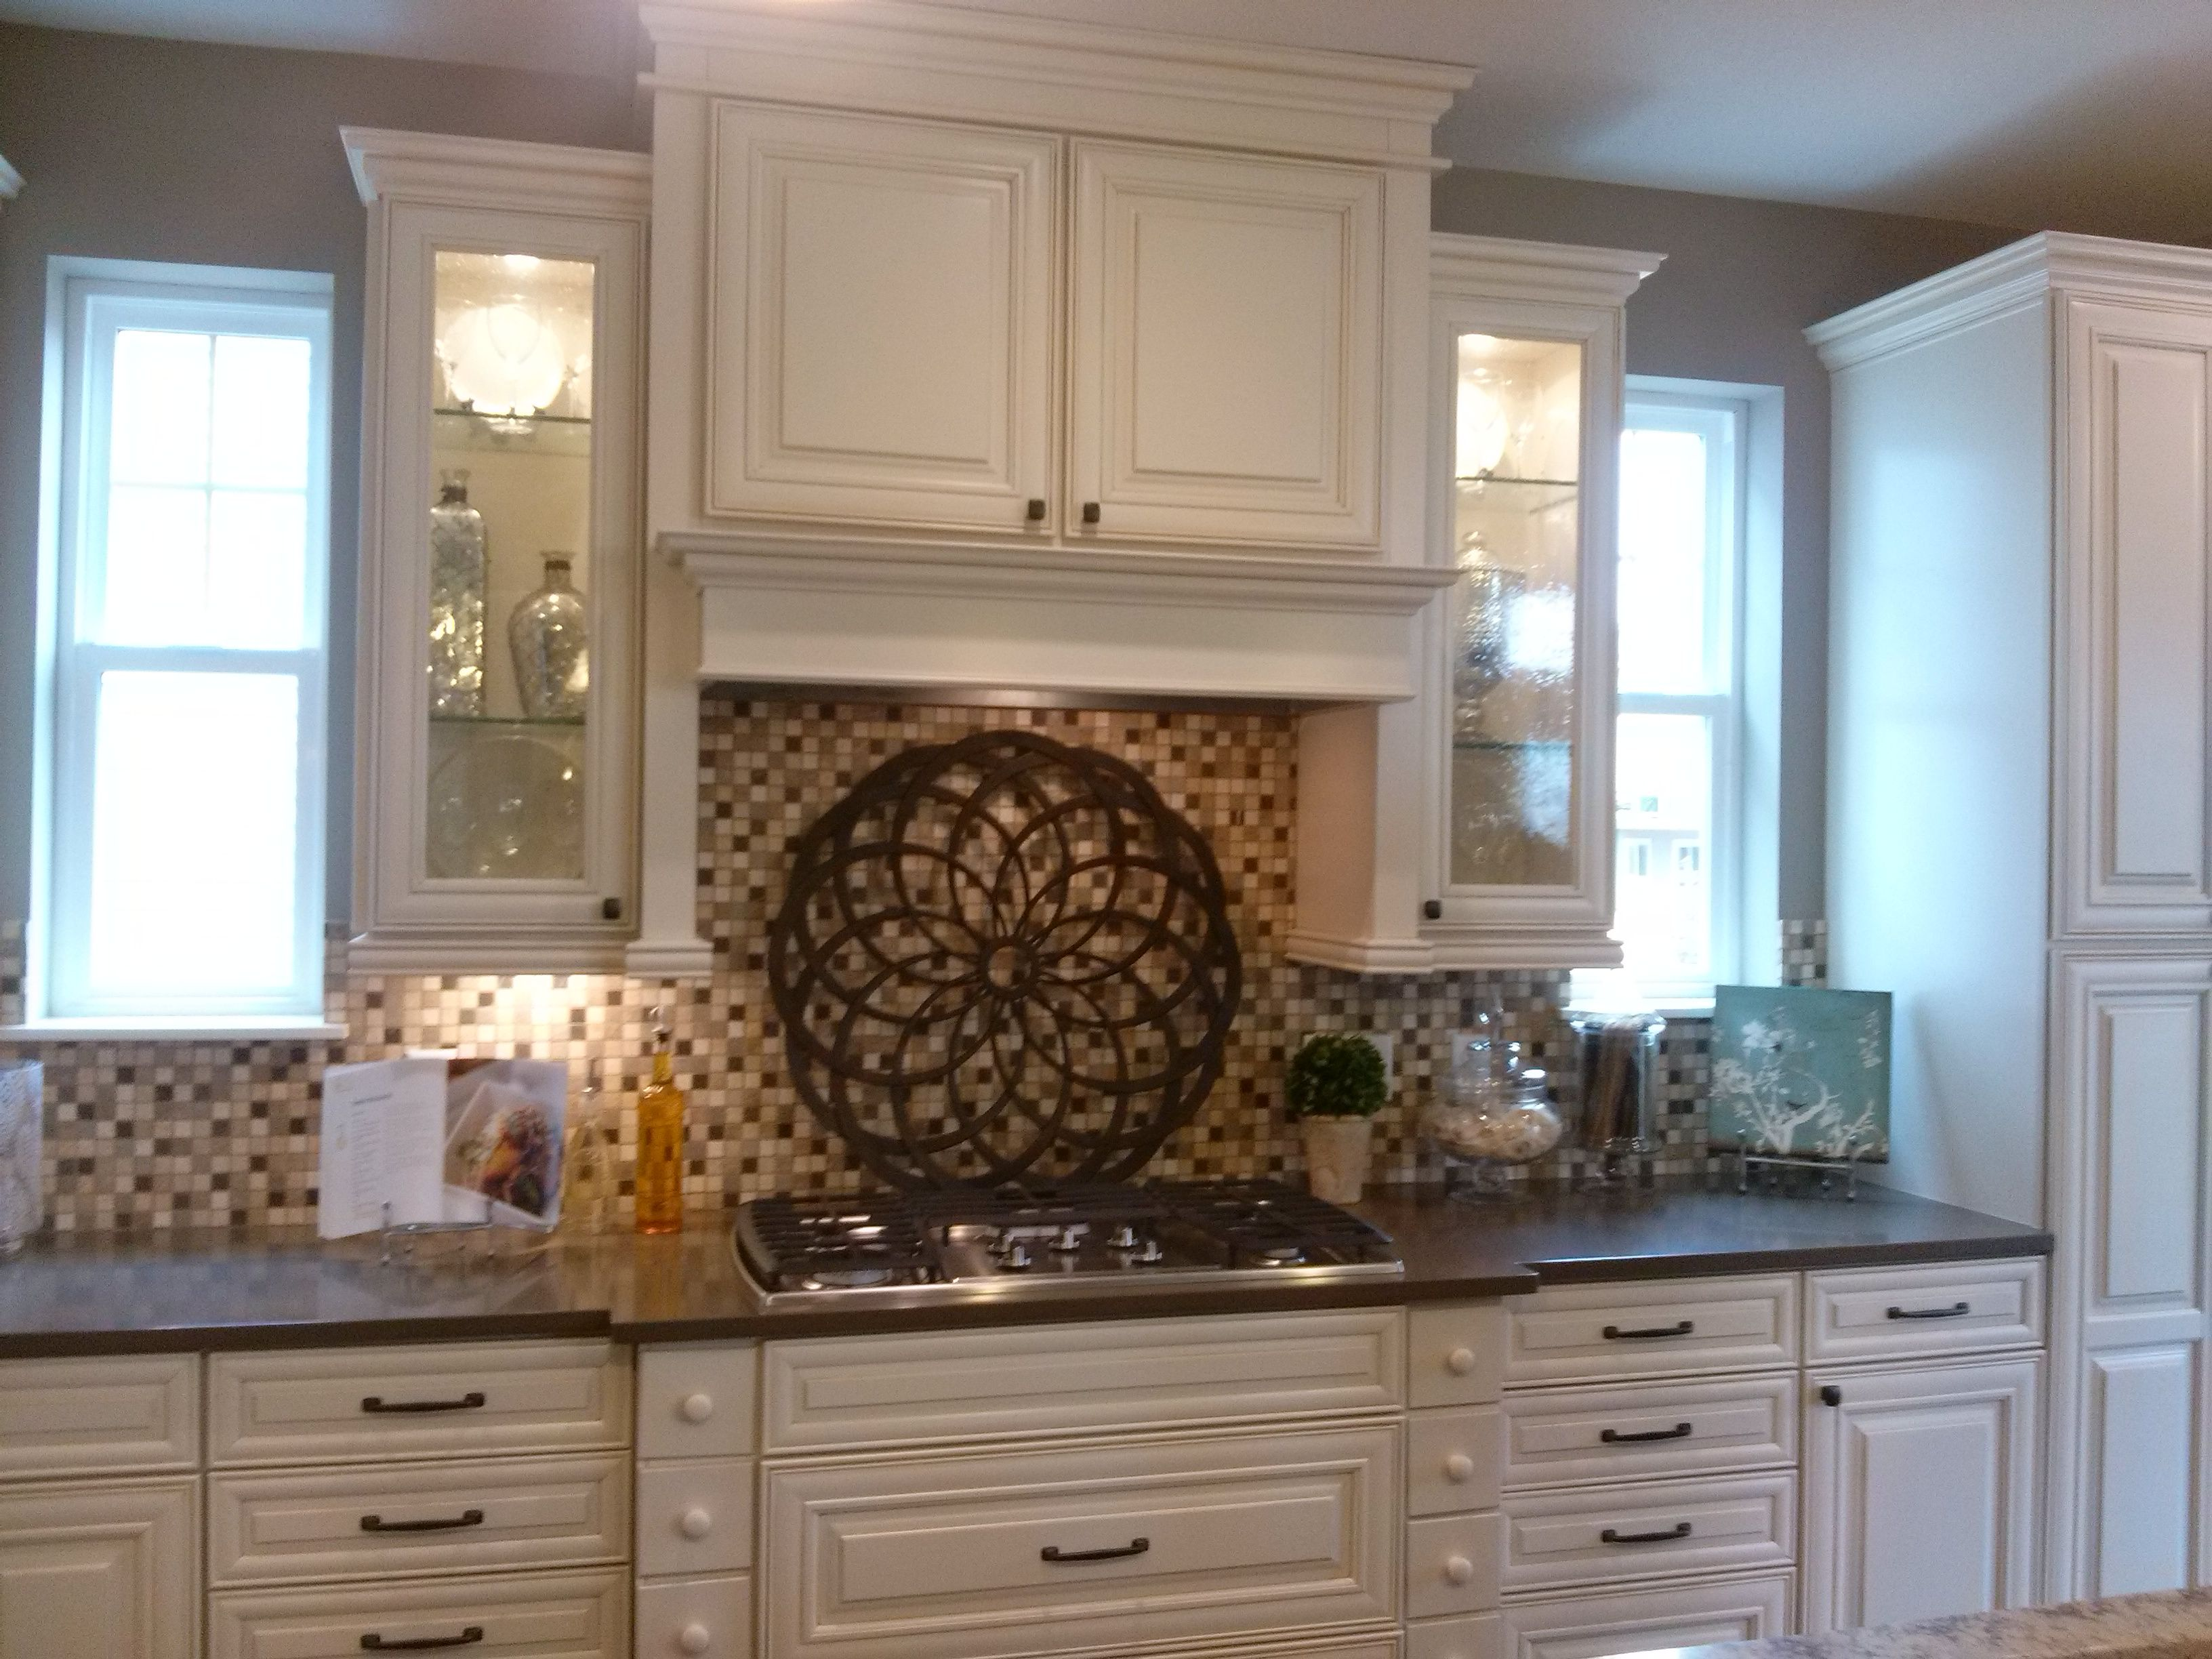 This Layout Above The Stove Top Electric Cabinets With Glass Doors On Side Cabinet No Hood